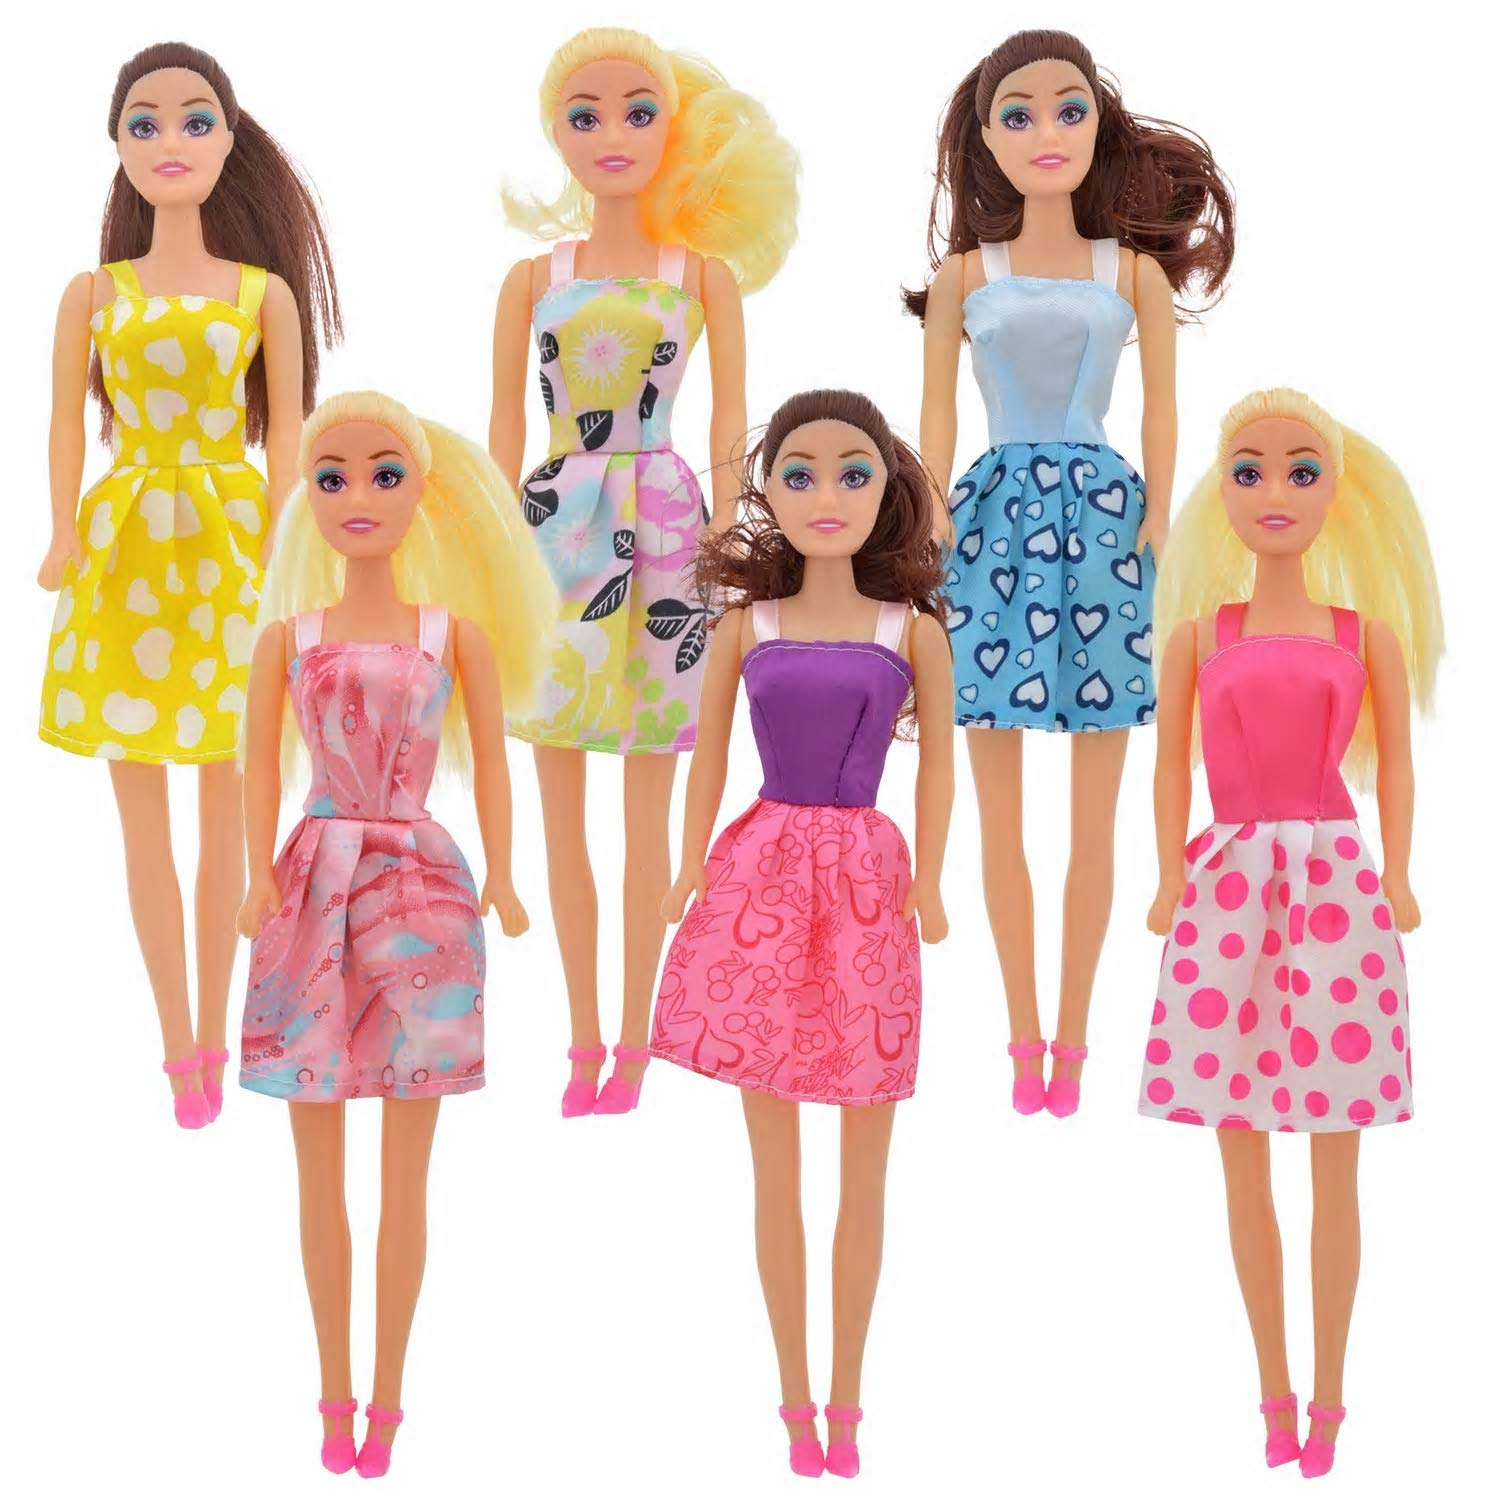 Set of 6 Set of 6 Unique Hairstyles /& Clothes in Individual Display Boxes 11 Color May Vary Meet Novelty American Fashion Beauty Dolls Great Girls Toys Birthday Party Favors Gifts 11